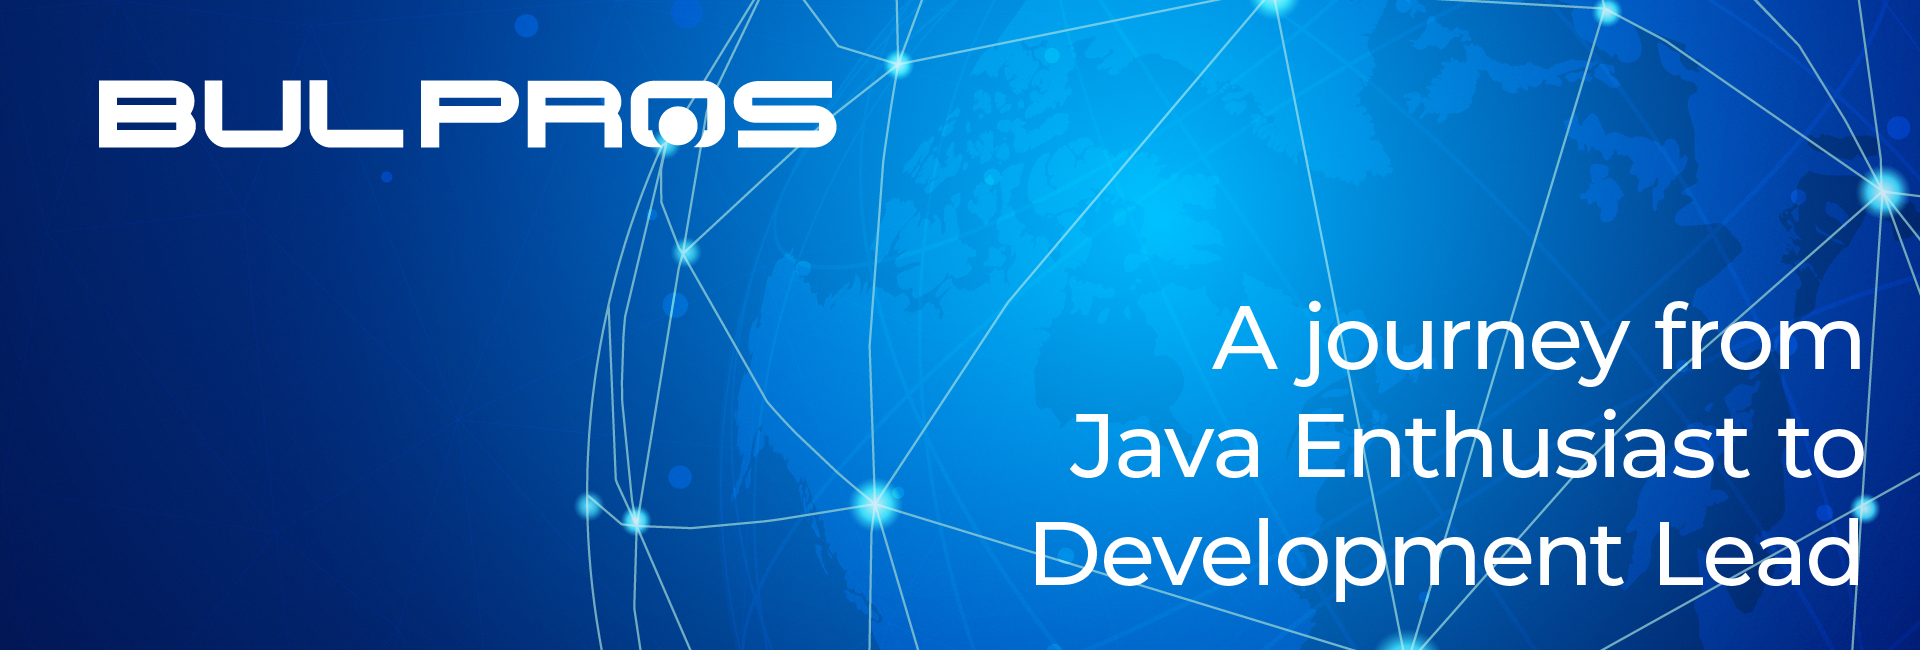 Od Java entuzijaste do Development Lead-a